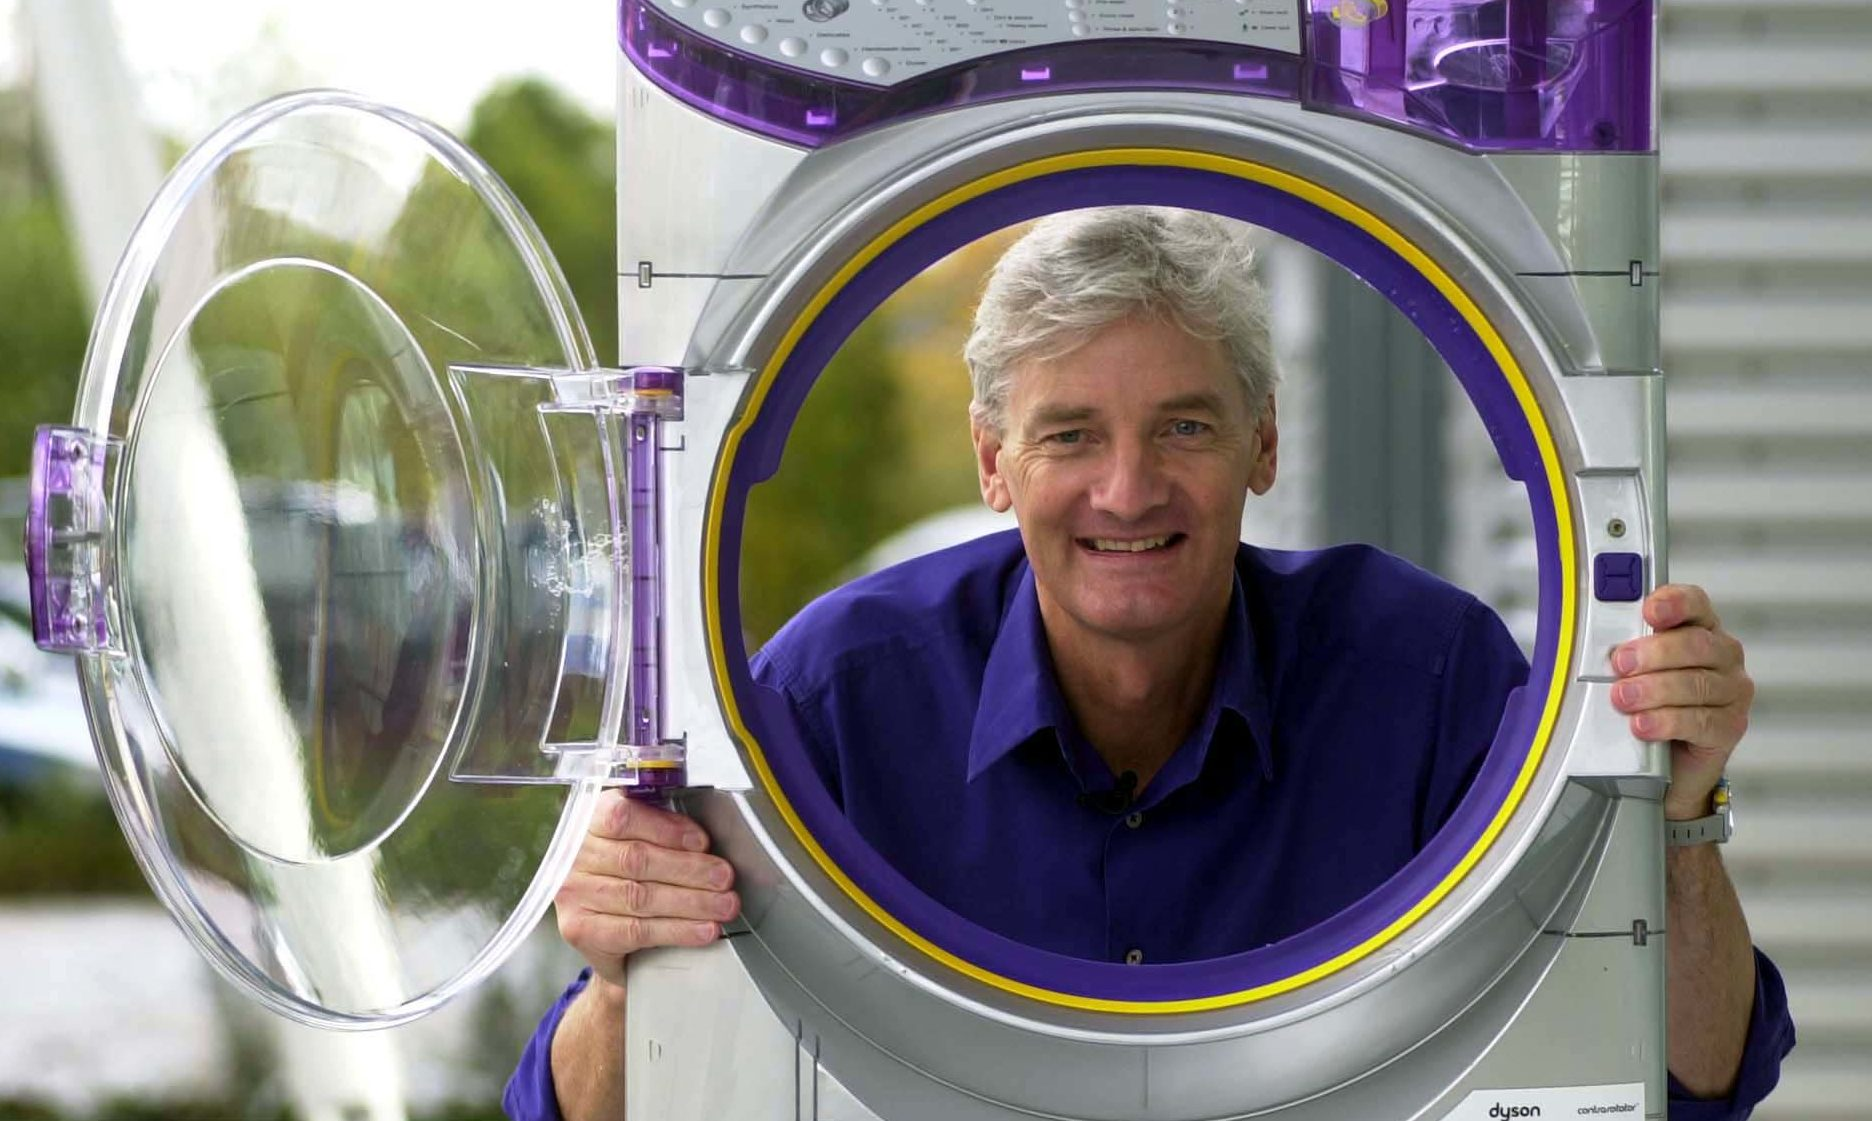 James Dyson with a Dyson Contrarotator washing machine.